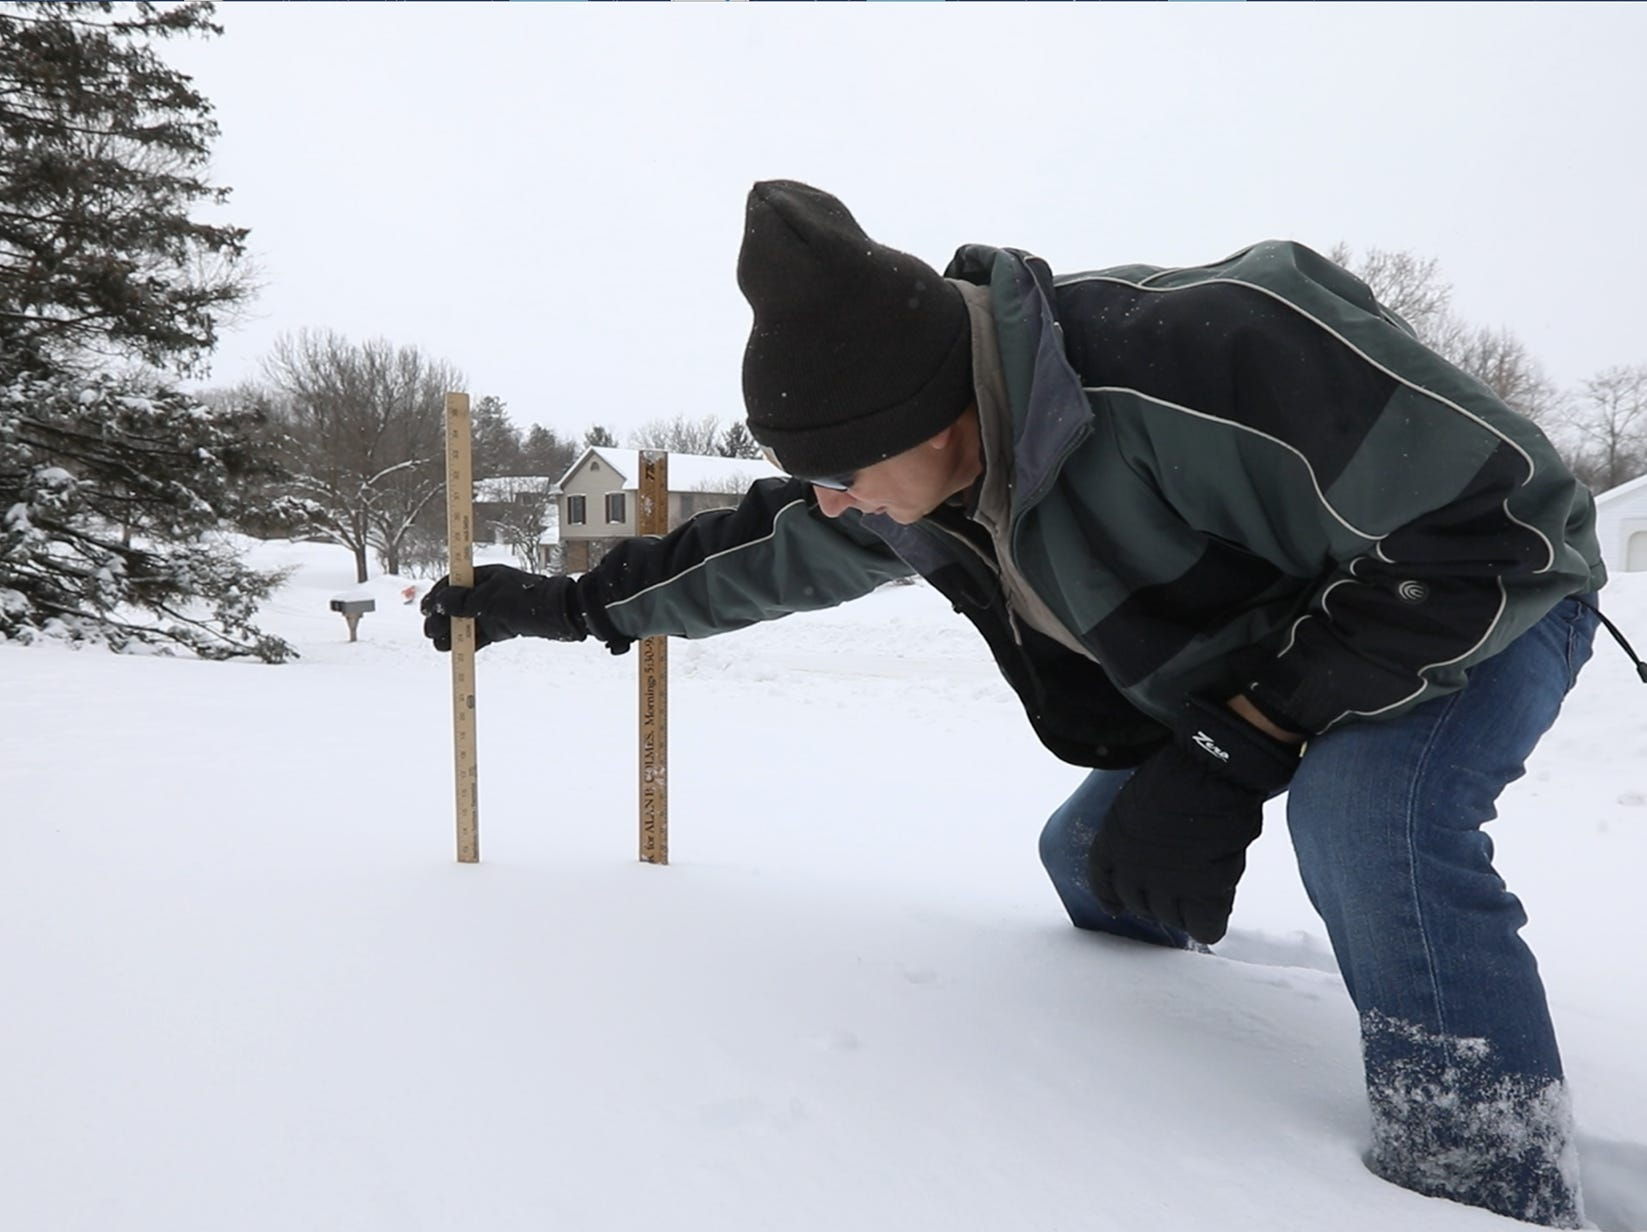 Keith Eichner of Pittsford measures the snowfall in his front yard around 1 p.m, Jan. 20, 2019.  He was taking the measurement as a volunteer weather spotter for both the National Weather Service and the Community Collaborative Rain, Hail & Snow Network.  Because this was a significant snow event, he was taking the measurement every six hours for the National Weather Service.